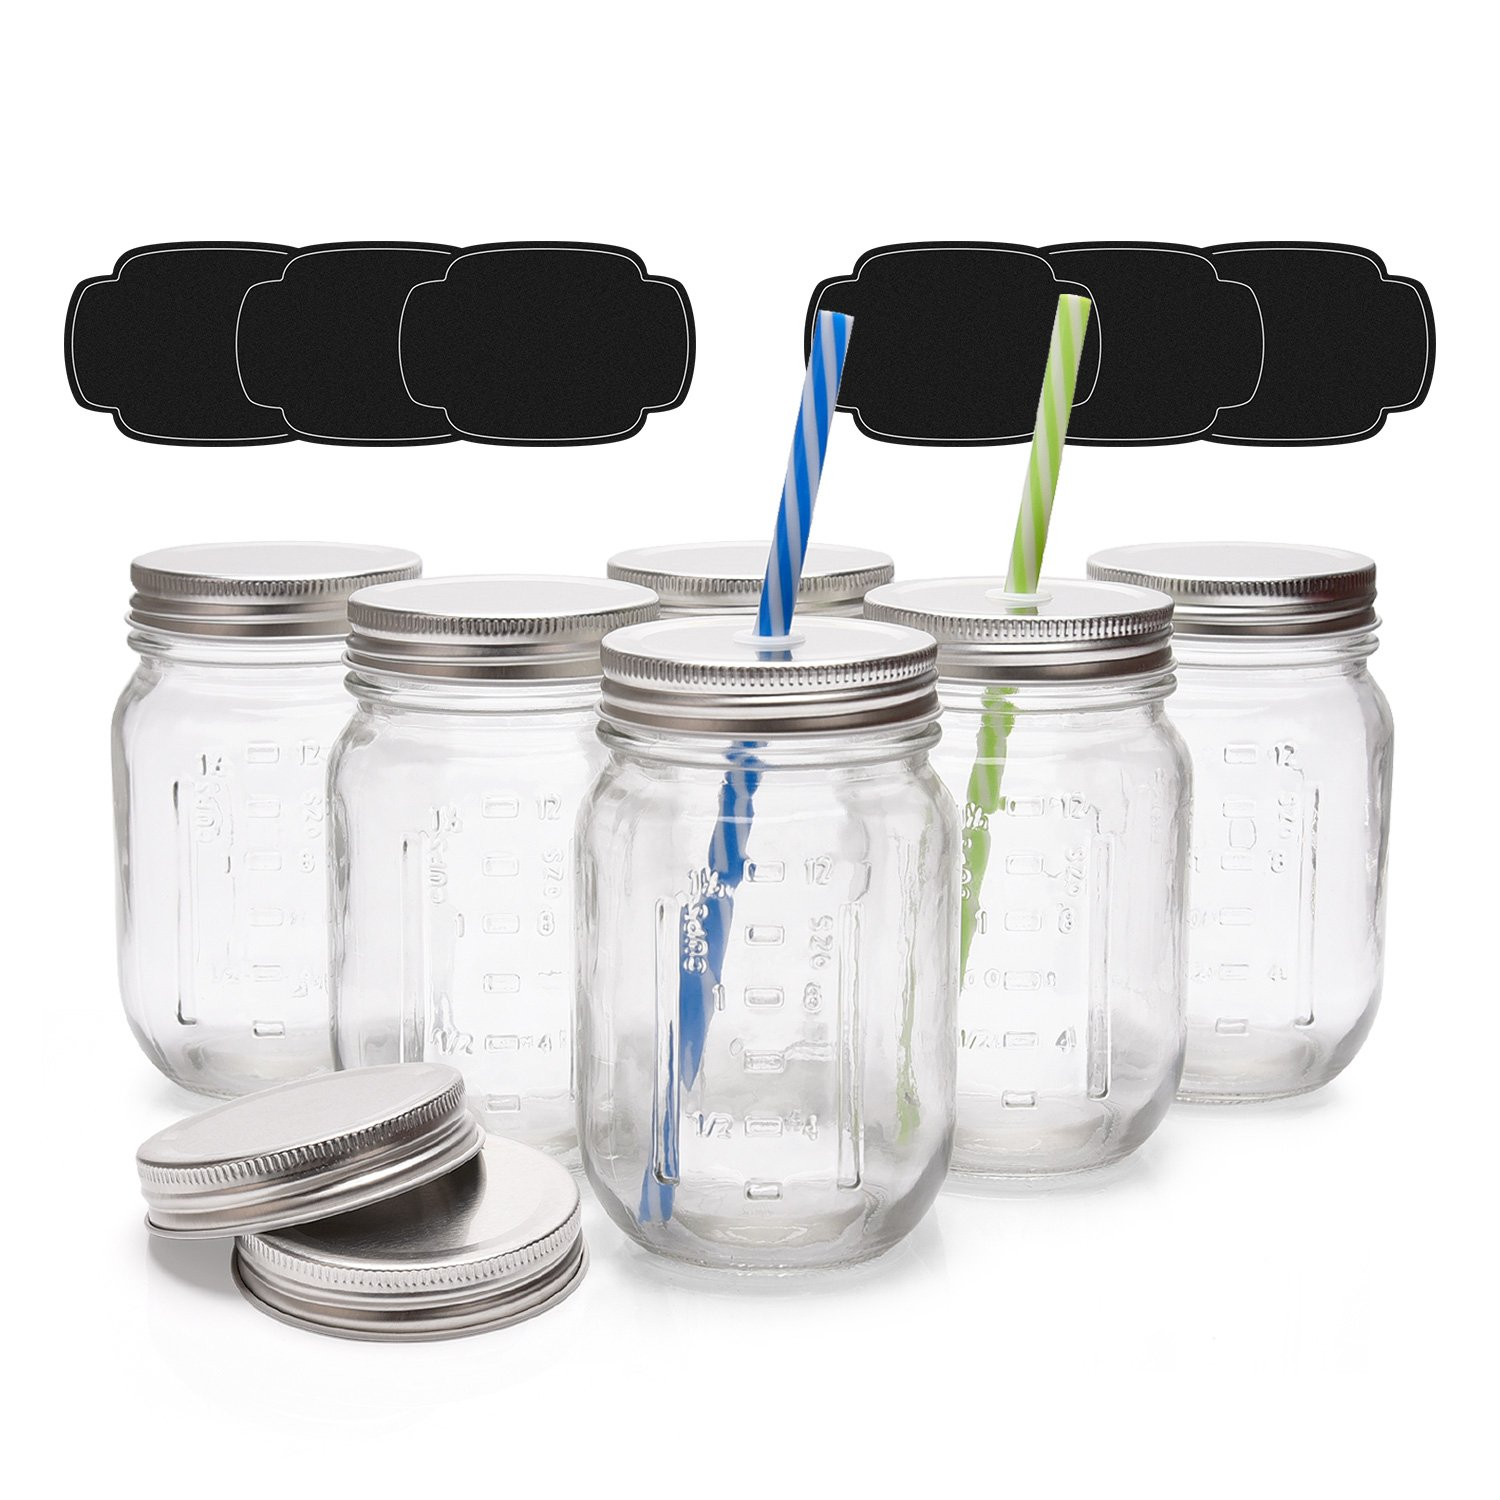 Mason Glass Jars 16oz (1 Pint) ULG Regular Mouth Lids and Band Canning Jelly Jars Set of 6 for Kitchen Canisters with Straw Holes Lids 2 pcs and Plastic Straws 2 Pcs